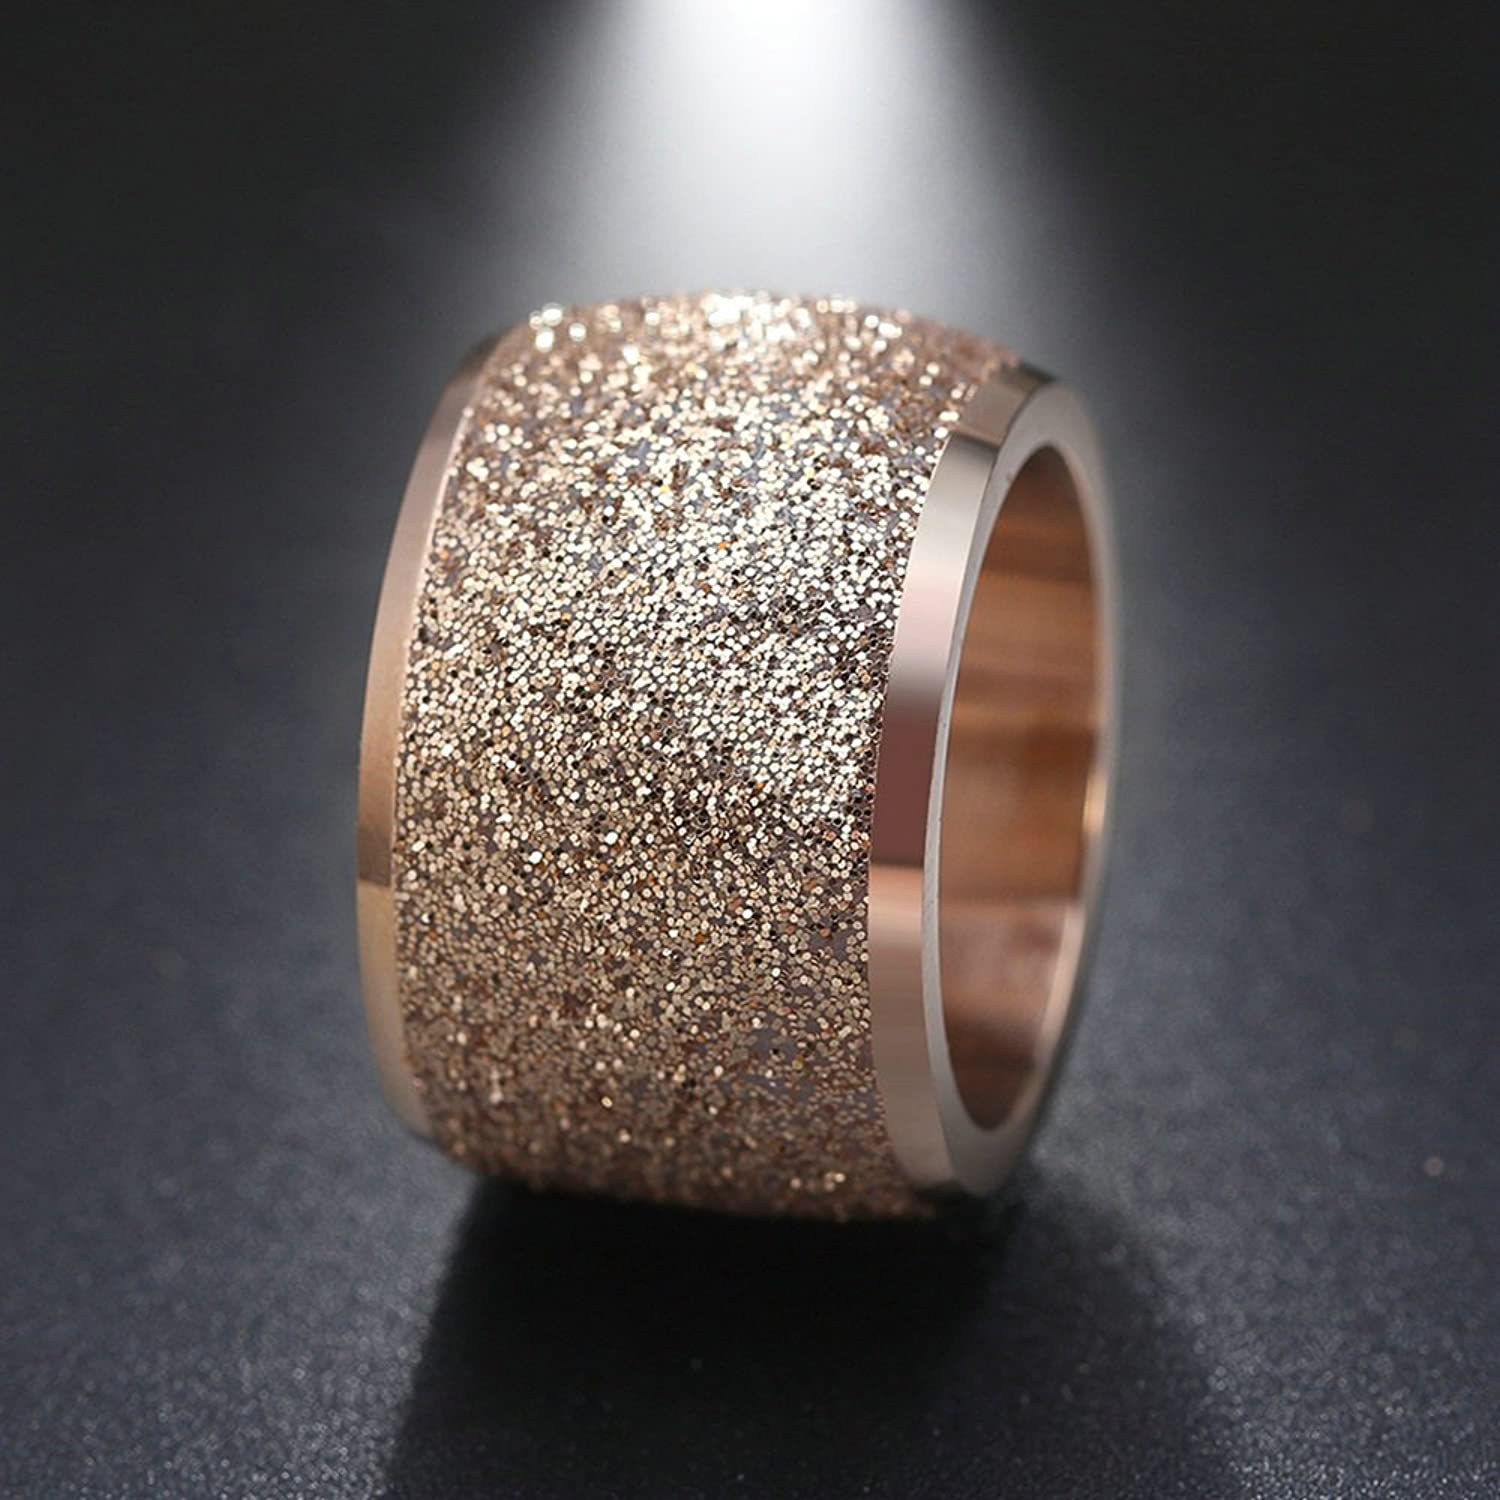 Onefeart Stainless Steel Ring for Women Girls Scrub Wide Design Wedding Band Rose Gold Size L 1/2 - R 1/2 ylWTVPNCM